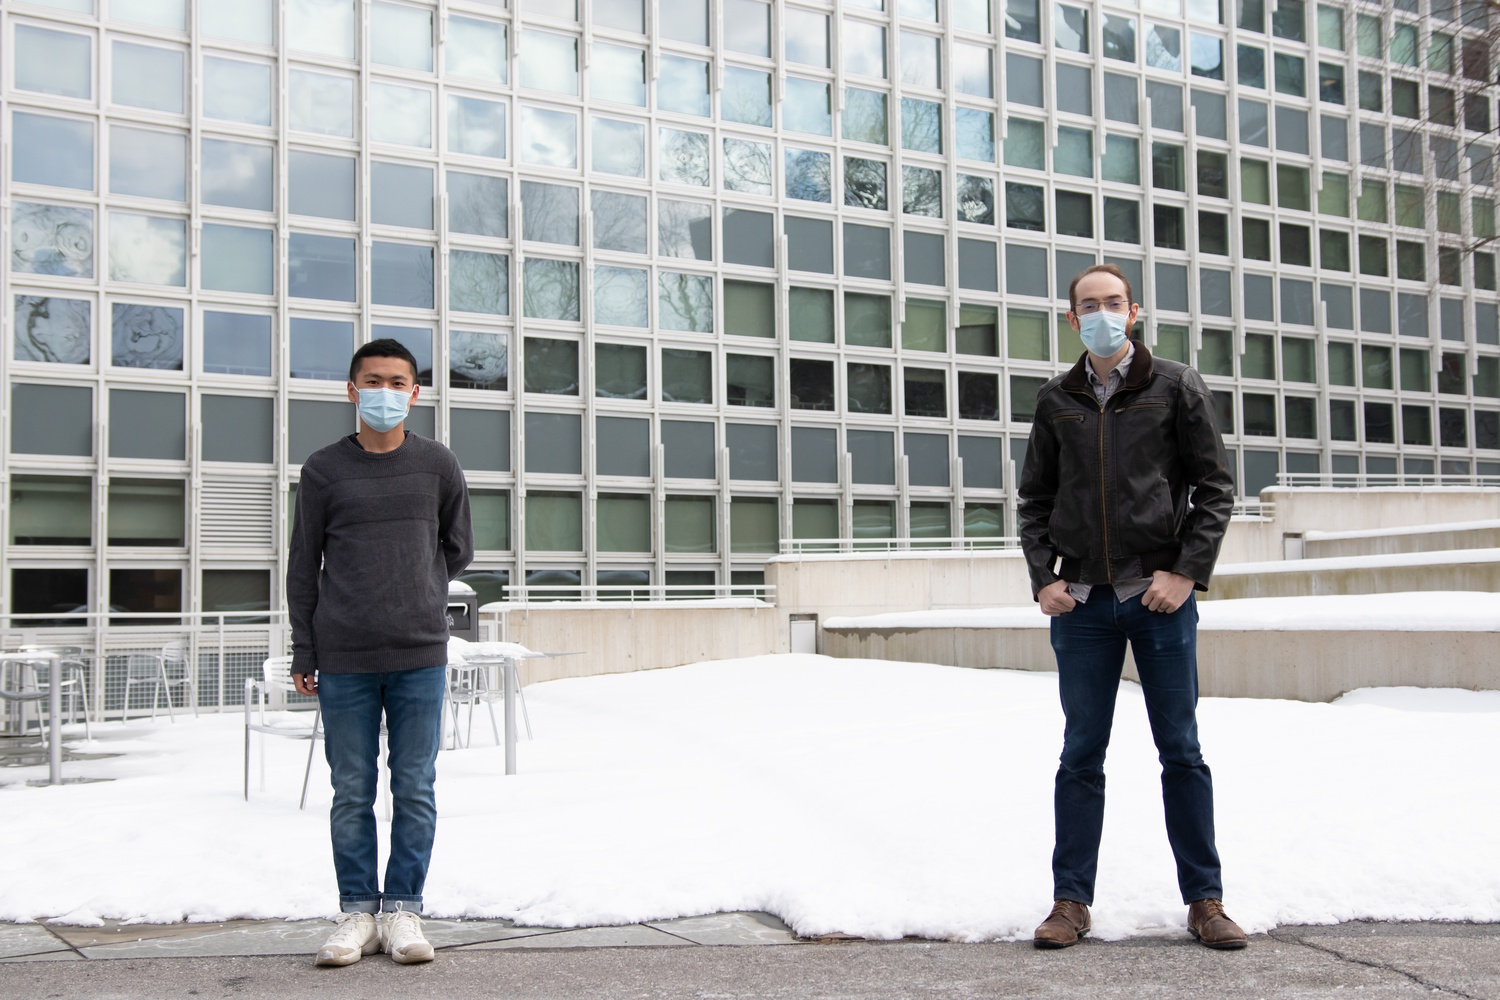 Zeyu Hao and Andrew Zimmerman are two Harvard researchers who worked on the development of a new twisted graphene configuration for achieving superconductivity.